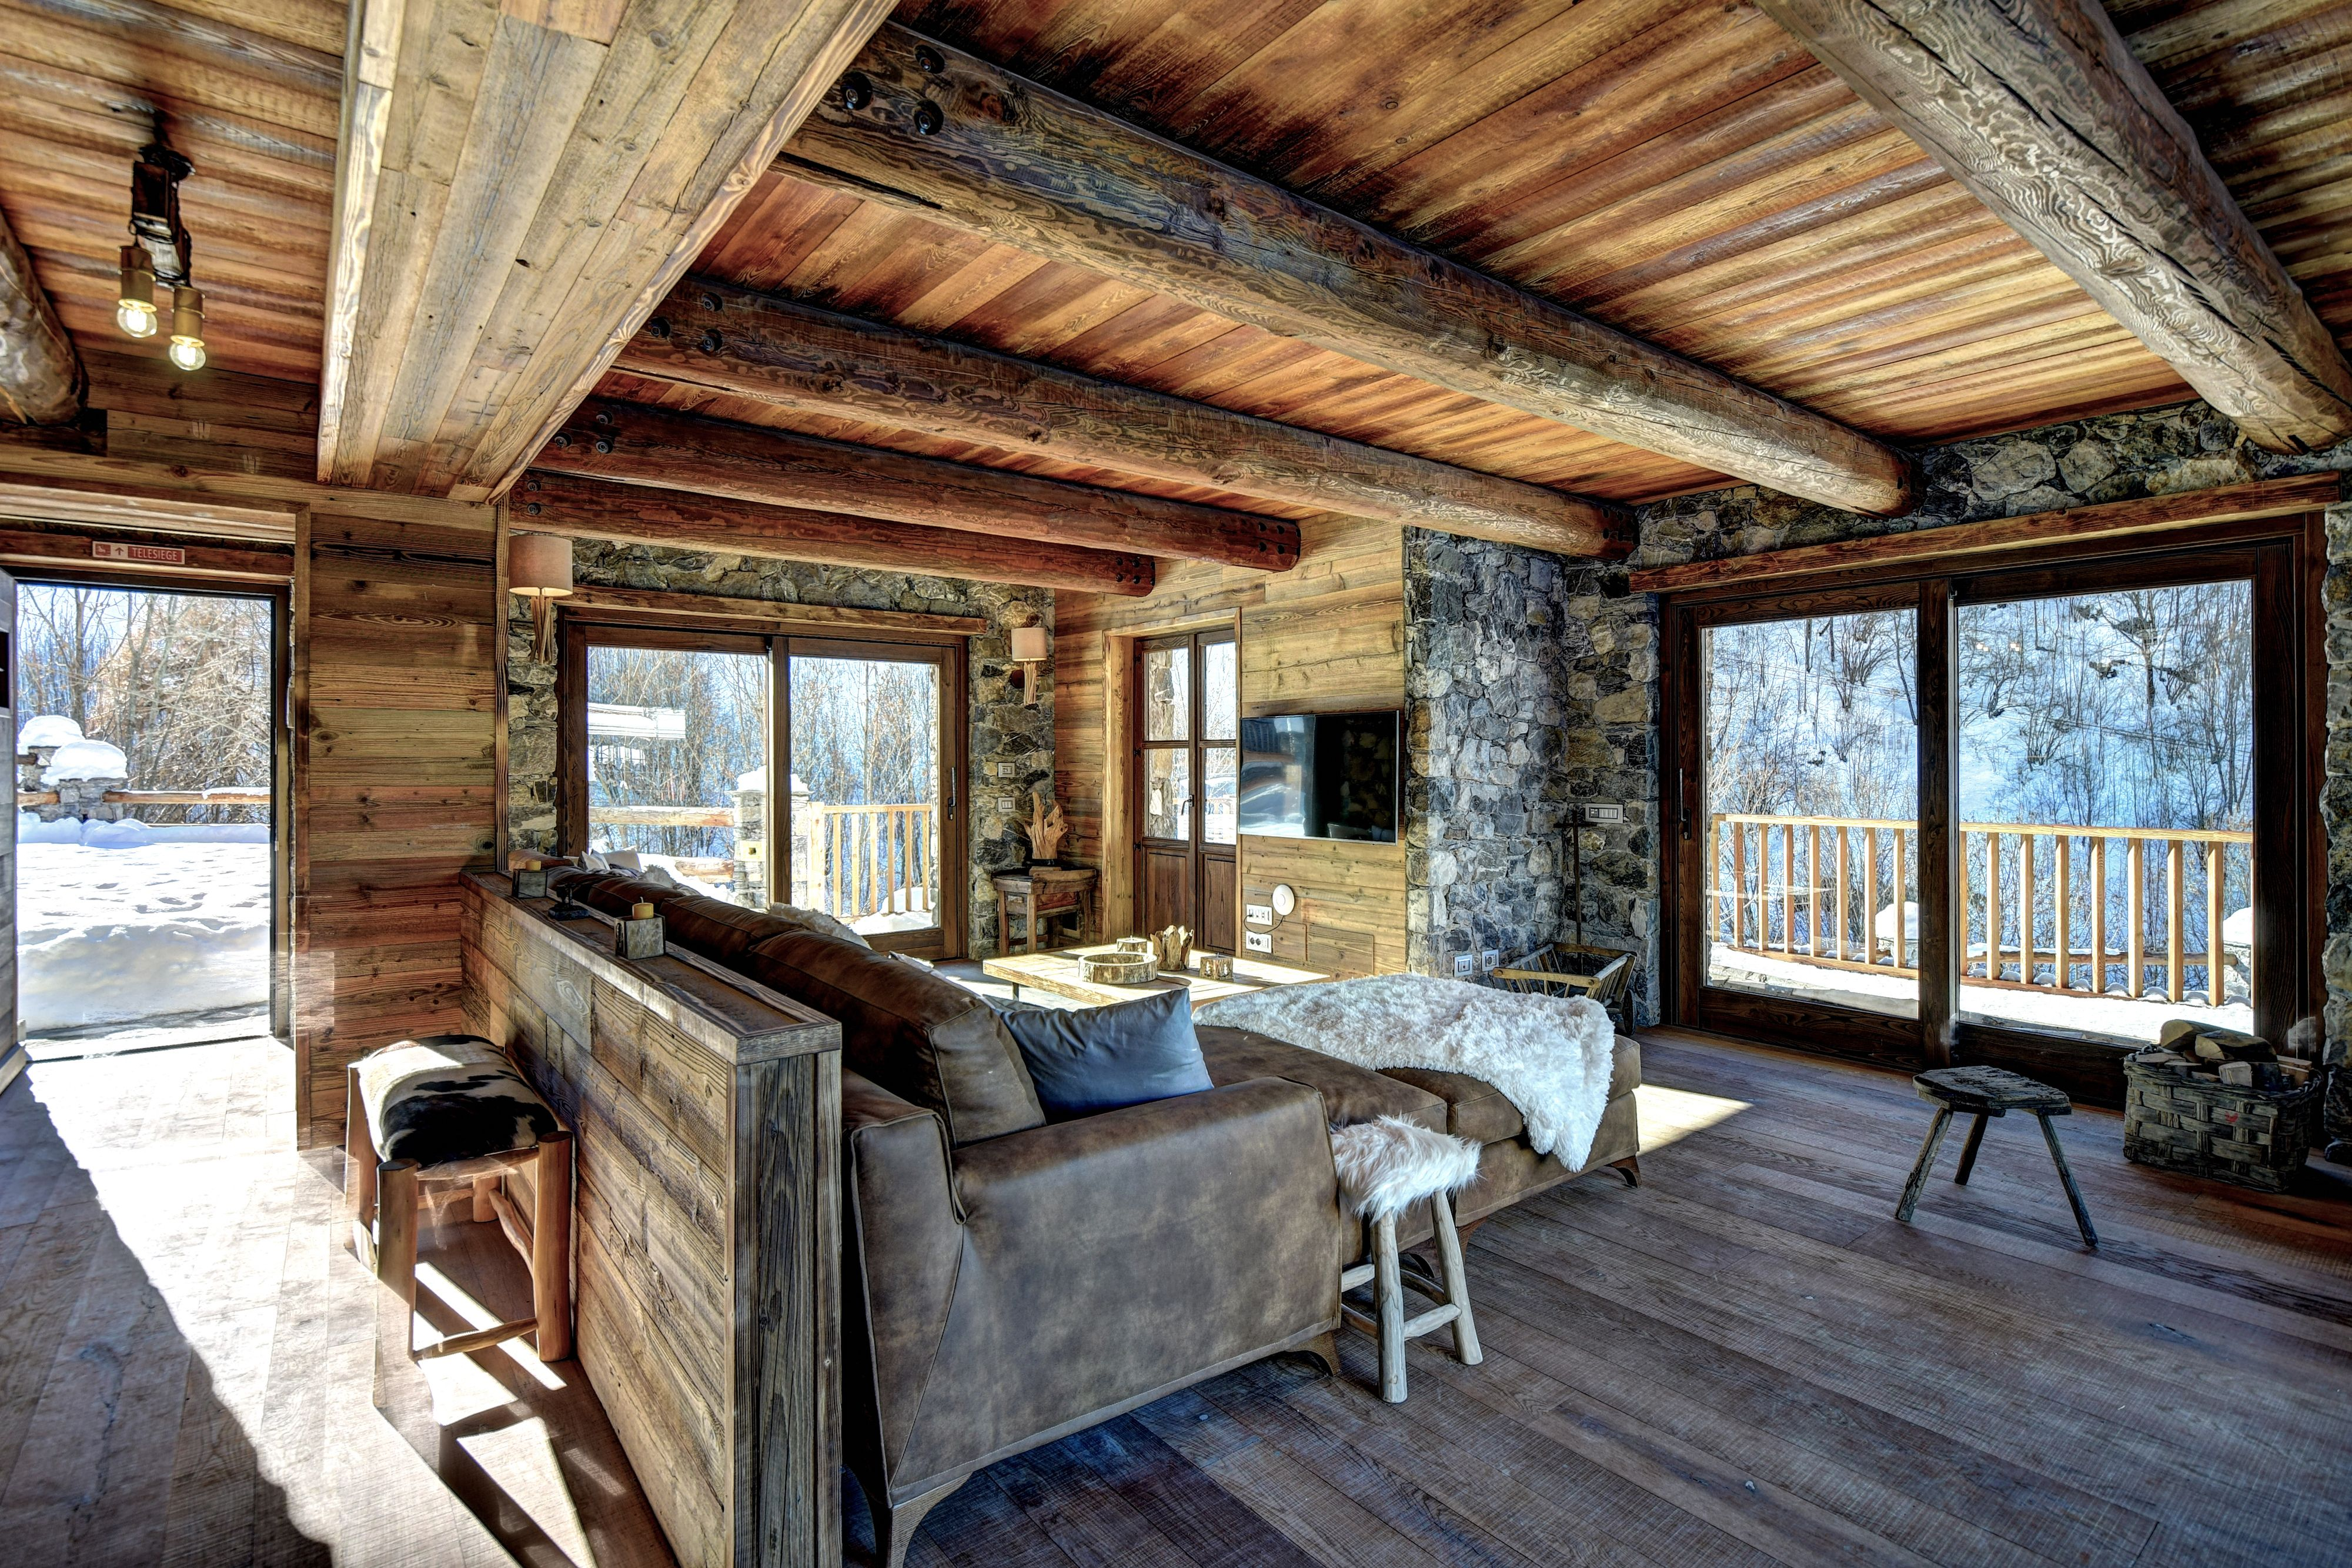 ski chalet furniture. Ski Chalet Living Room With Leather Sofa, Wooden Floor And Furniture. Big Windows Furniture R